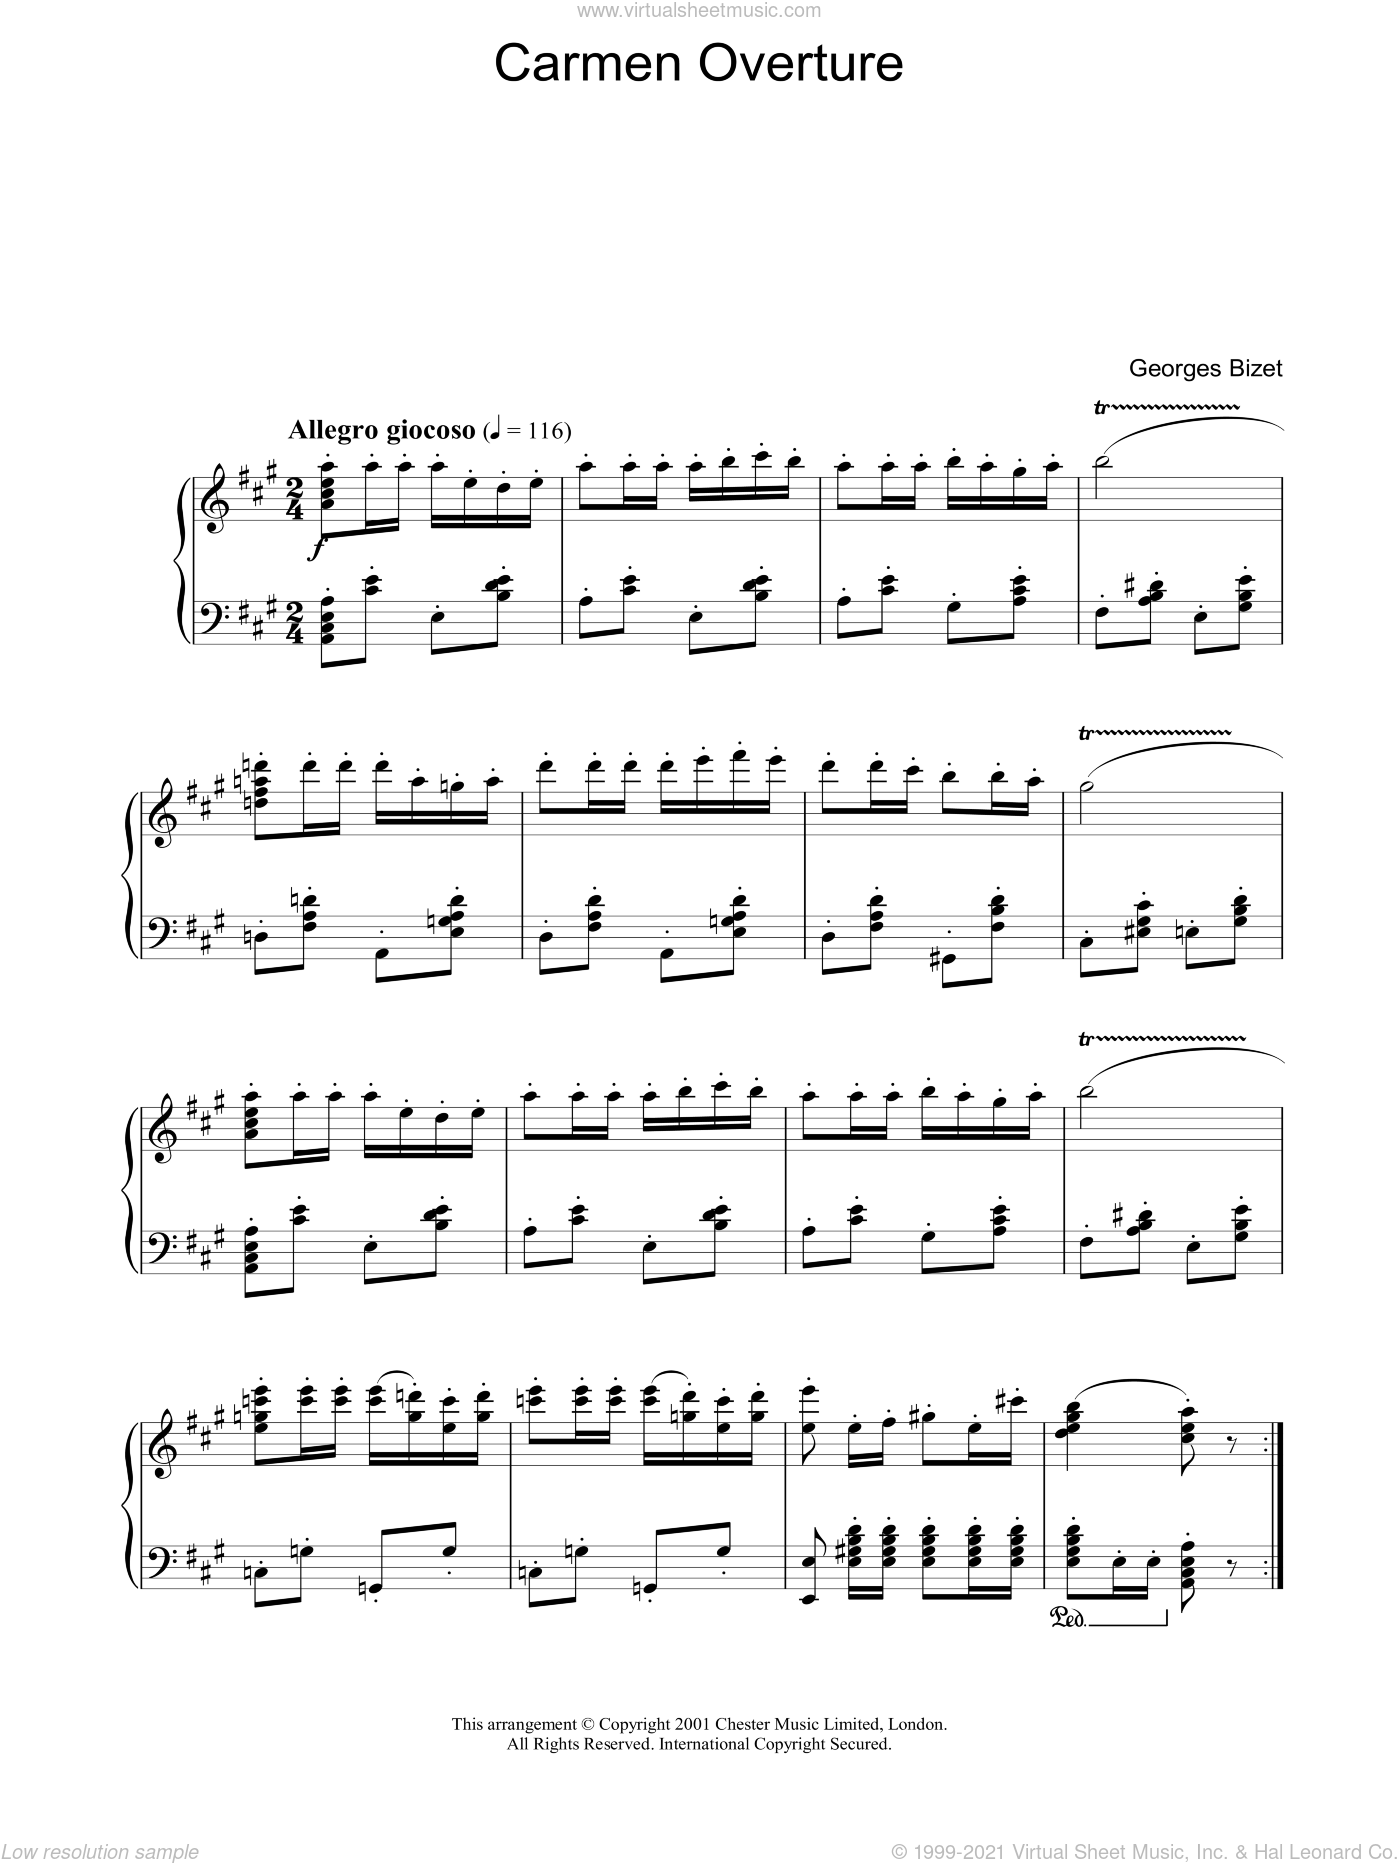 Overture from Carmen sheet music for piano solo by Georges Bizet